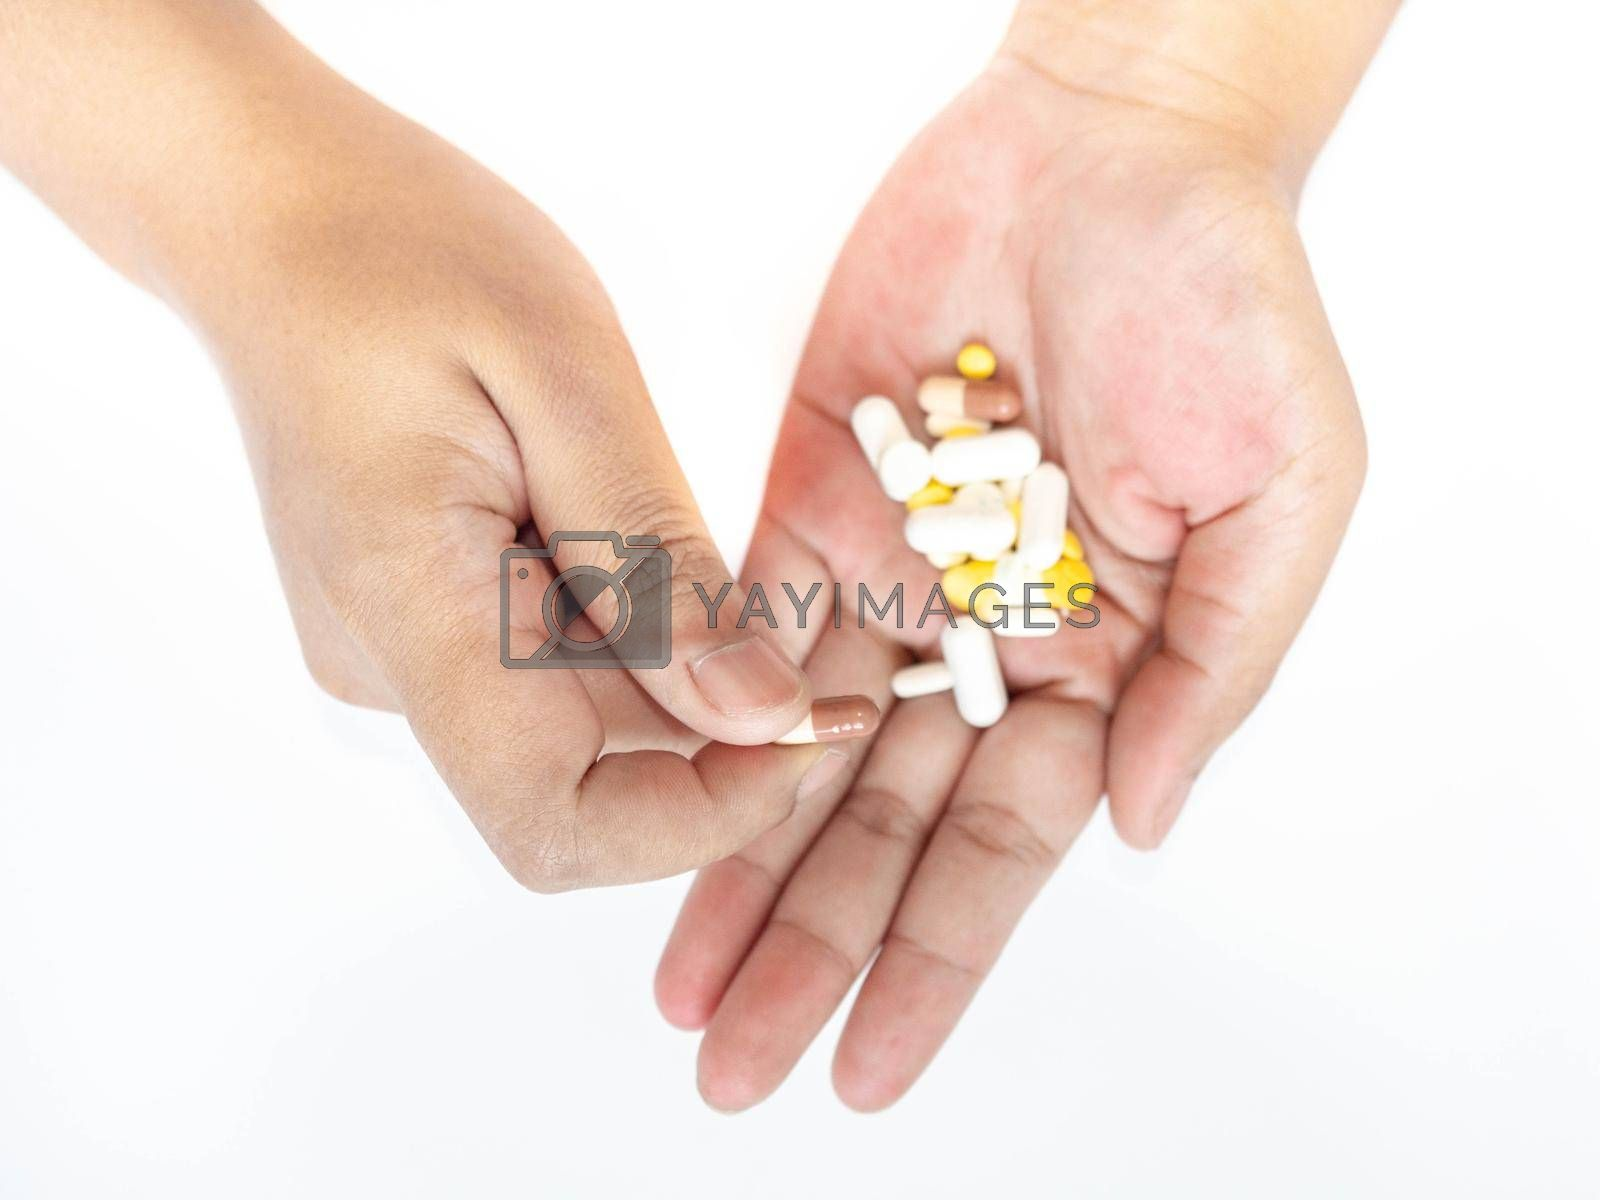 A woman picks up a pill from her hand White background.